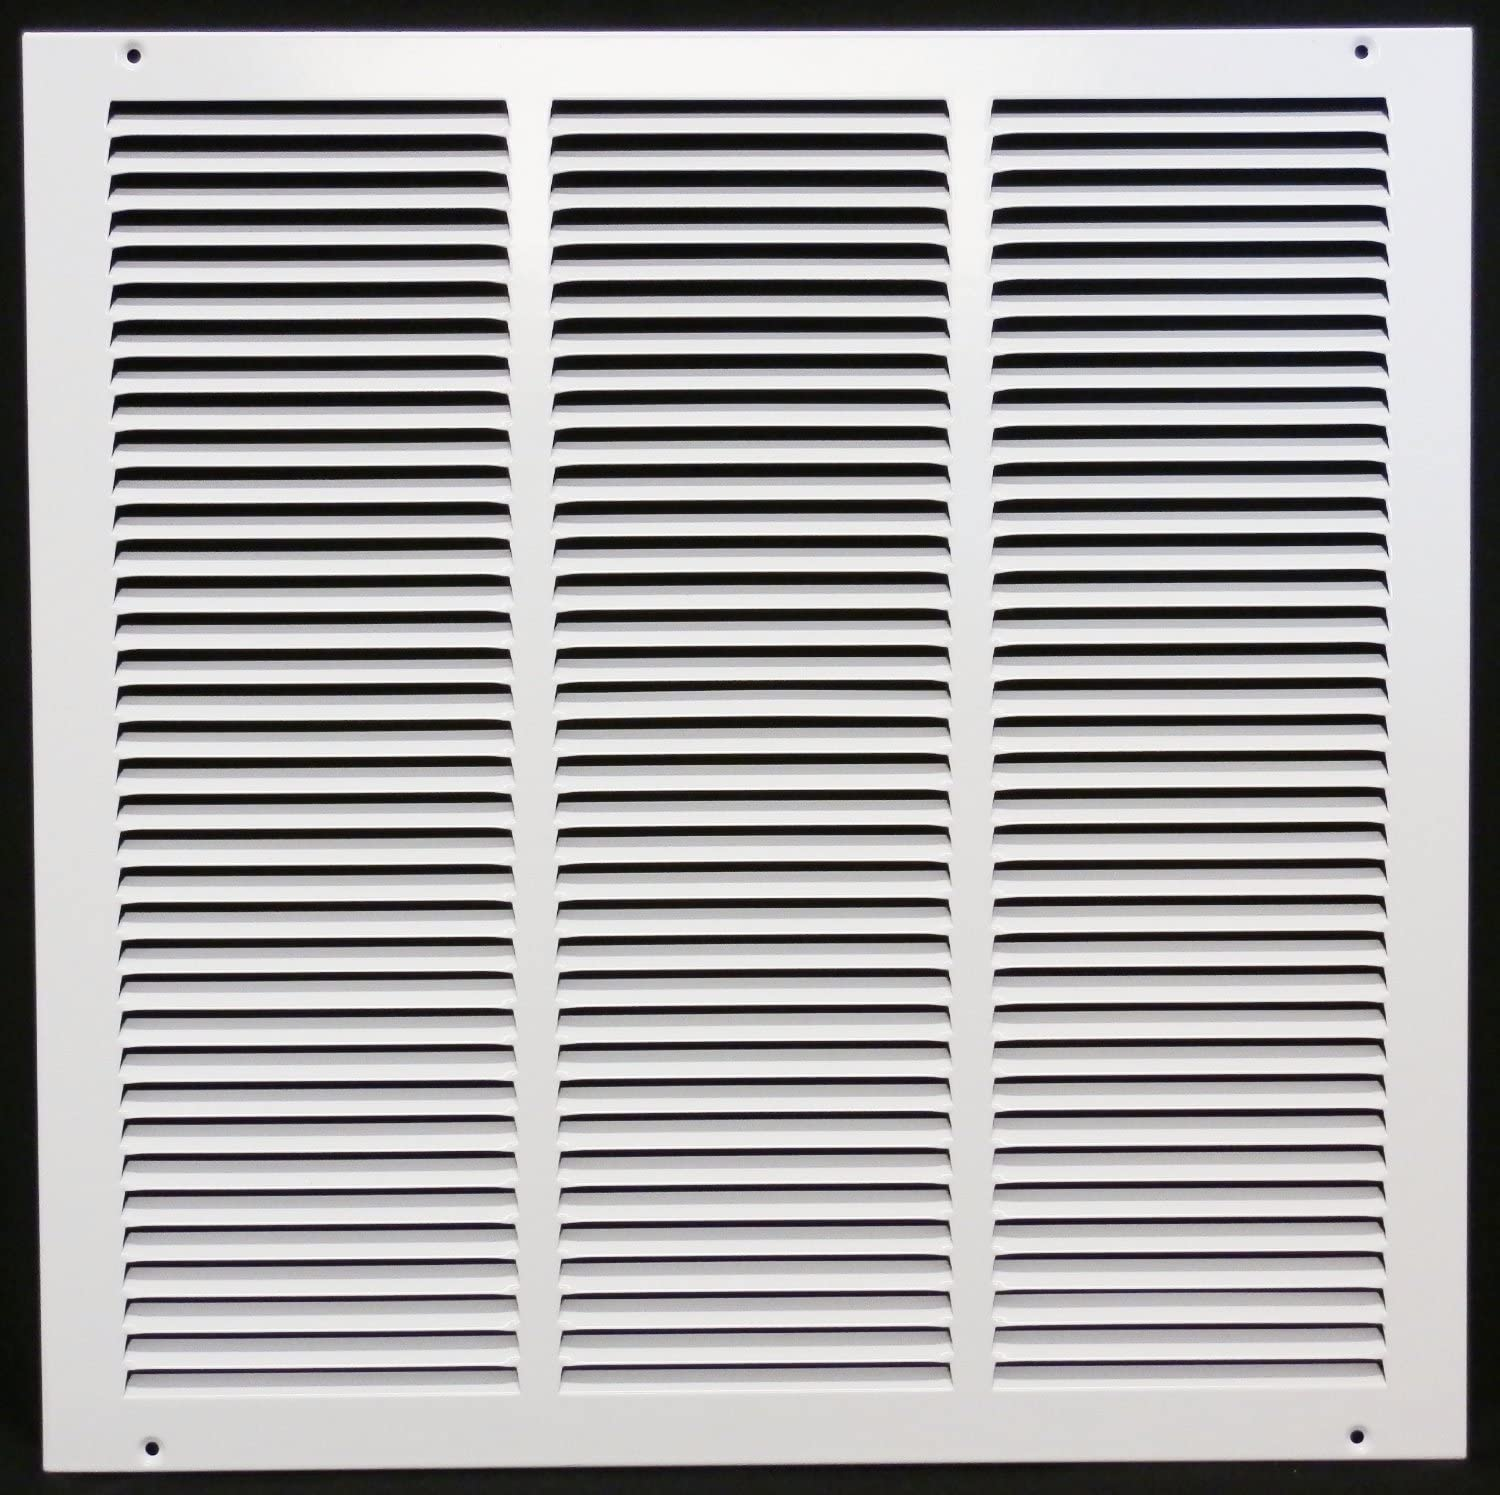 Sidewall and Ceiling 4 x 4 Return Air Grille HVAC Vent Duct Cover Diffuser - White Outer Dimensions: 5.75w X 5.75h